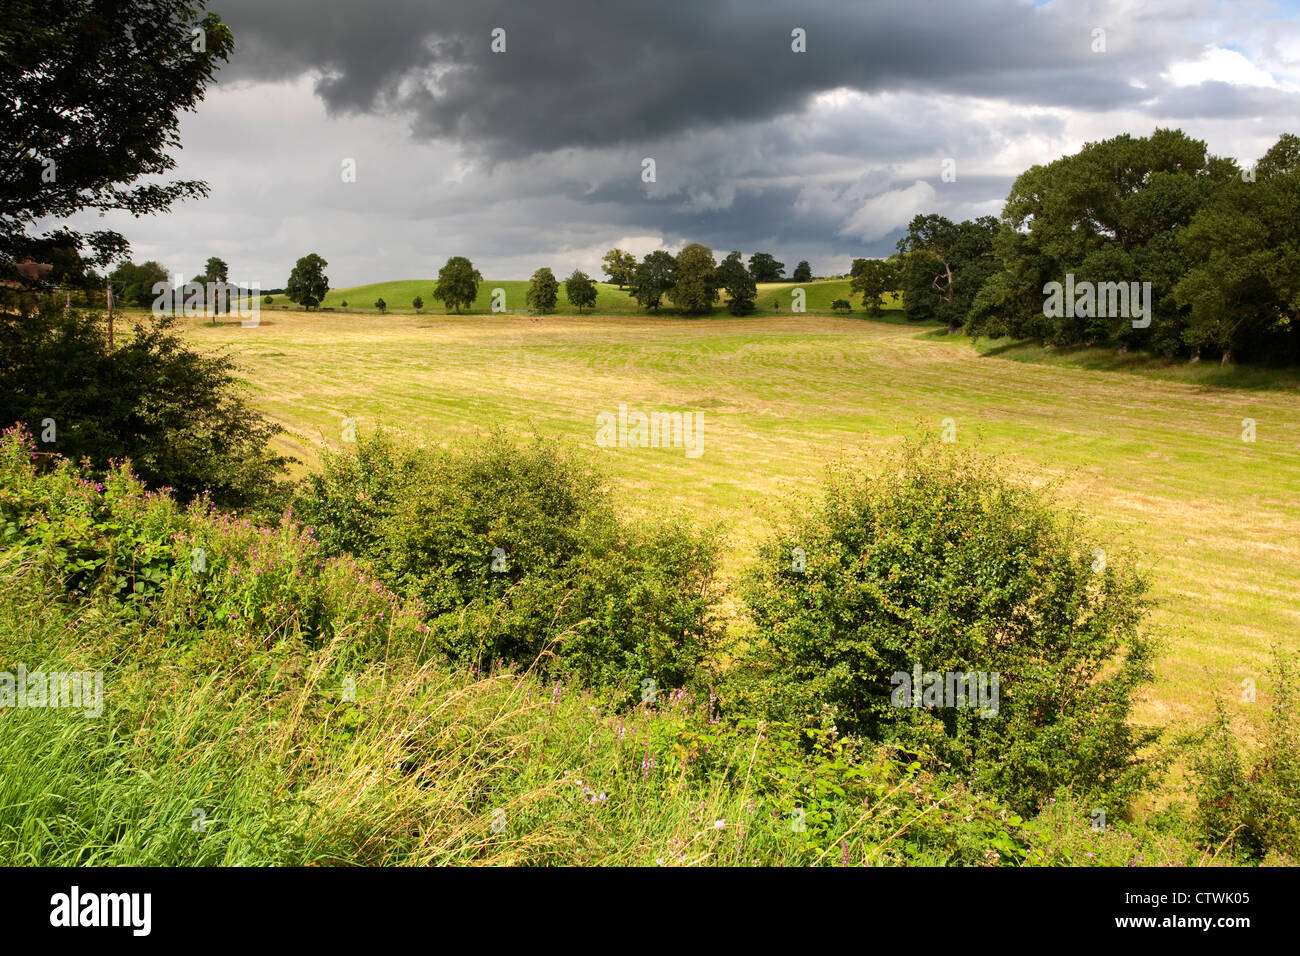 Looking North towards Nantwich from the banks of the Shropshire Union canal near Audlem. - Stock Image